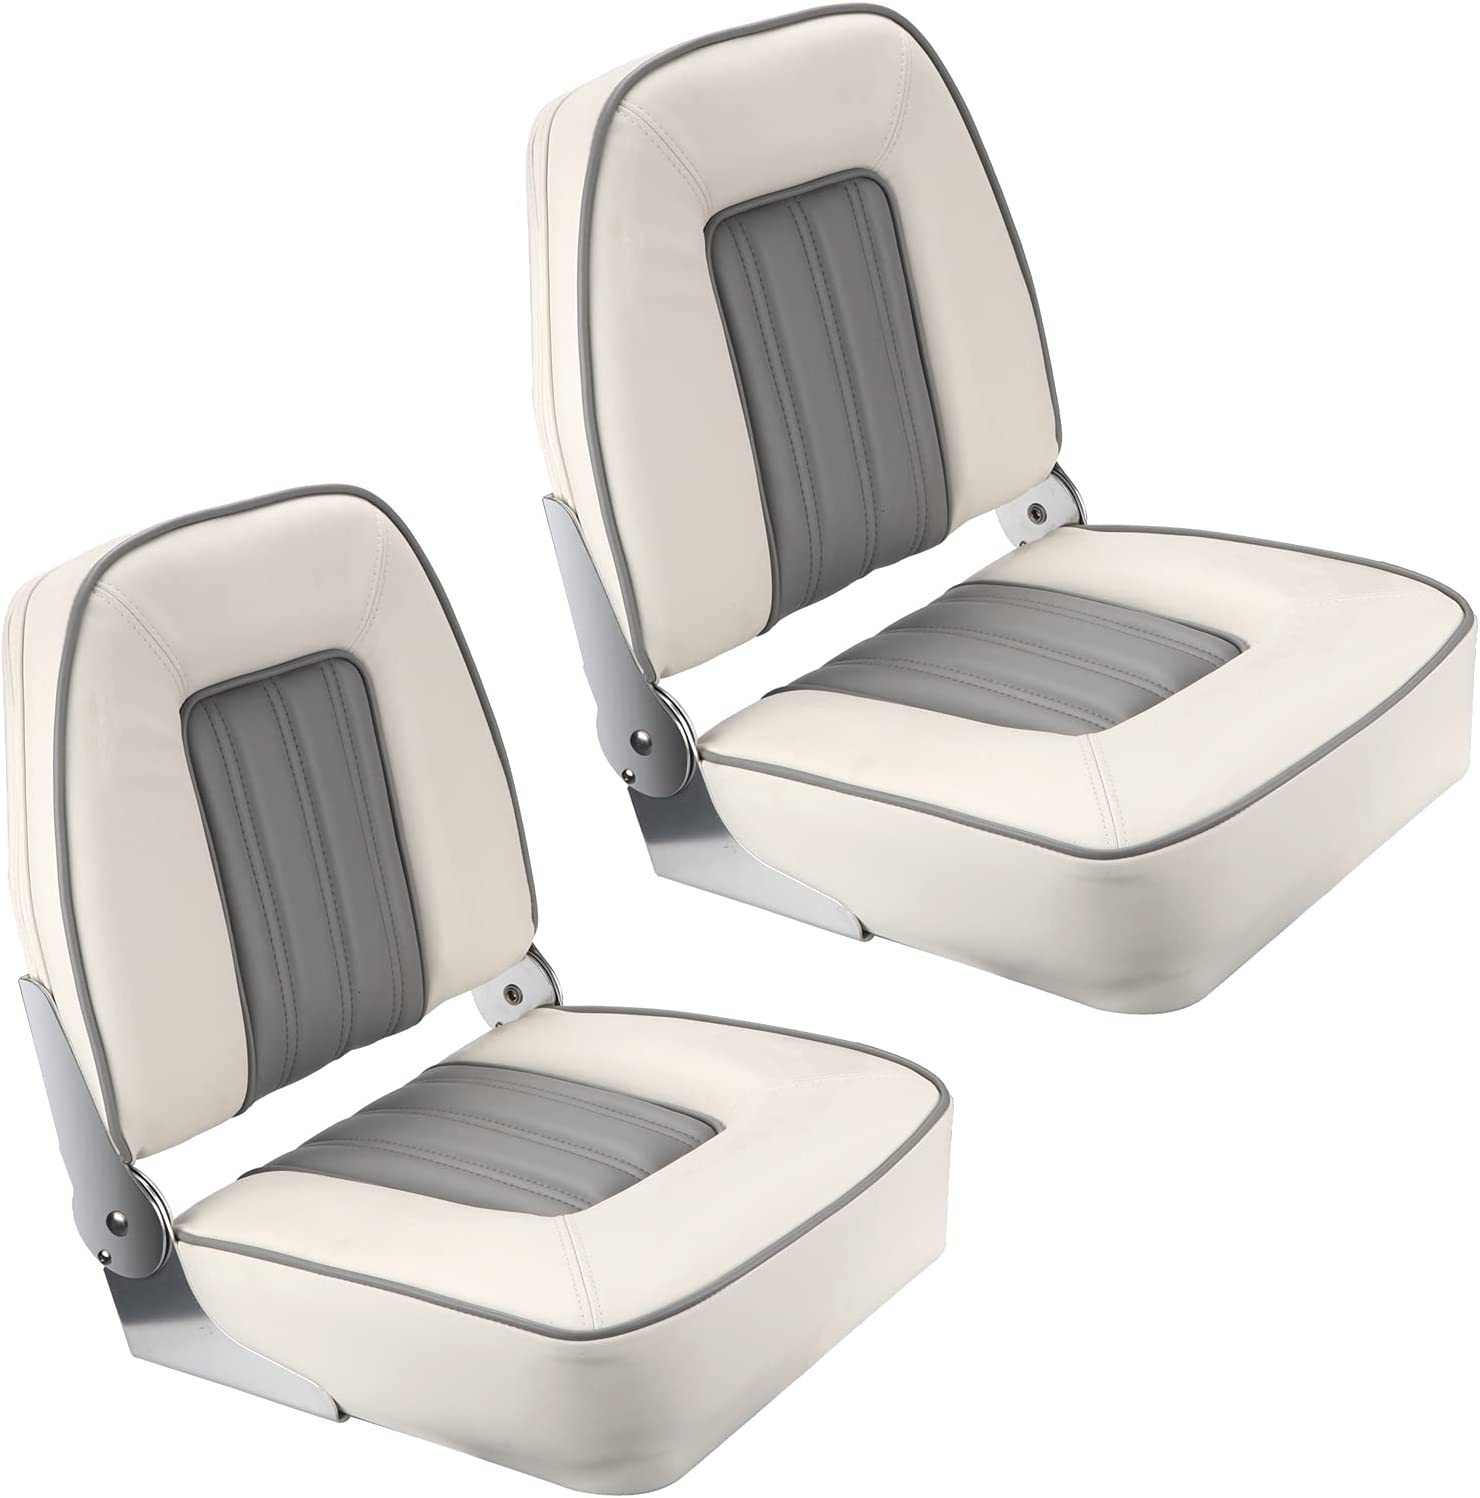 Fold-Down Fishing Boat Seat Low Sea Bass Folding Seats Back 55% OFF National products